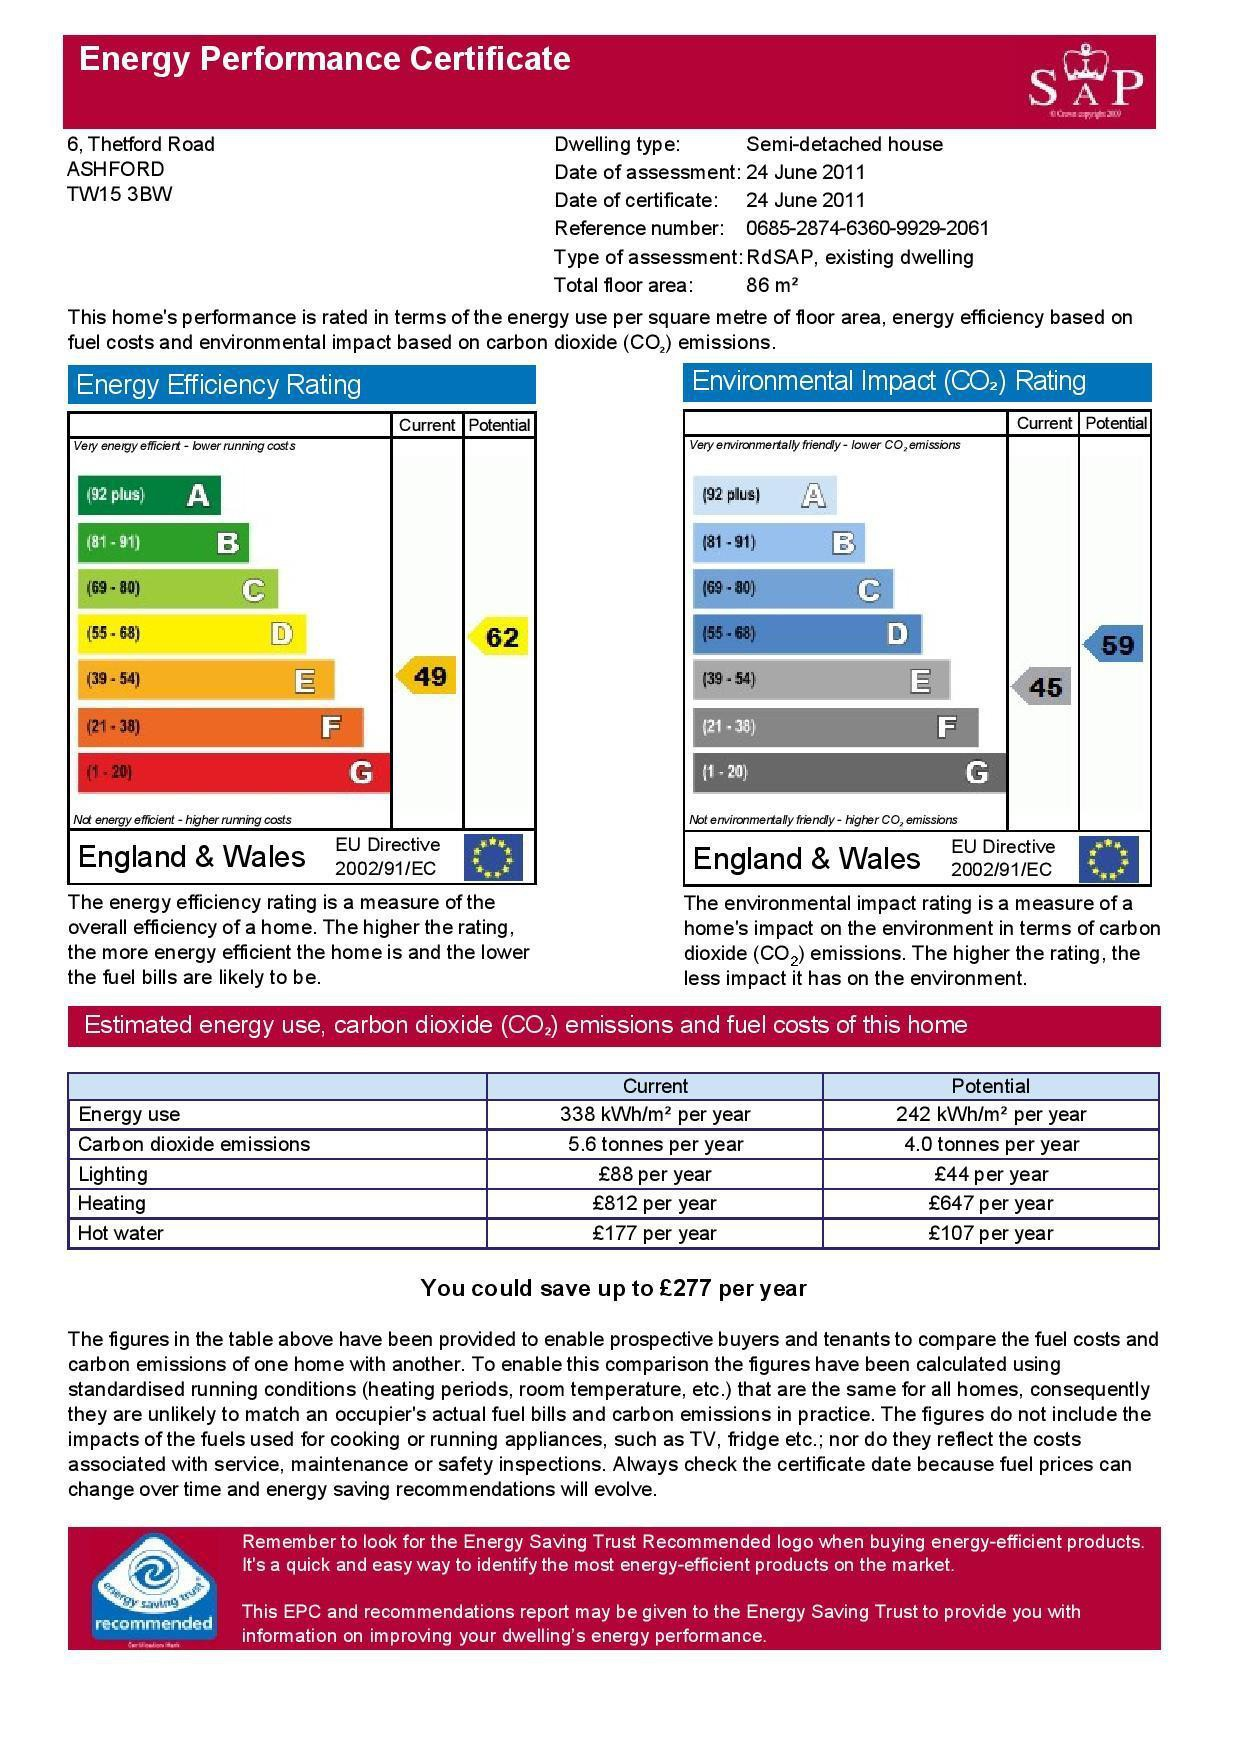 EPC Graph for 6 Thetford Road, Ashford, Middlesex TW15 3BW